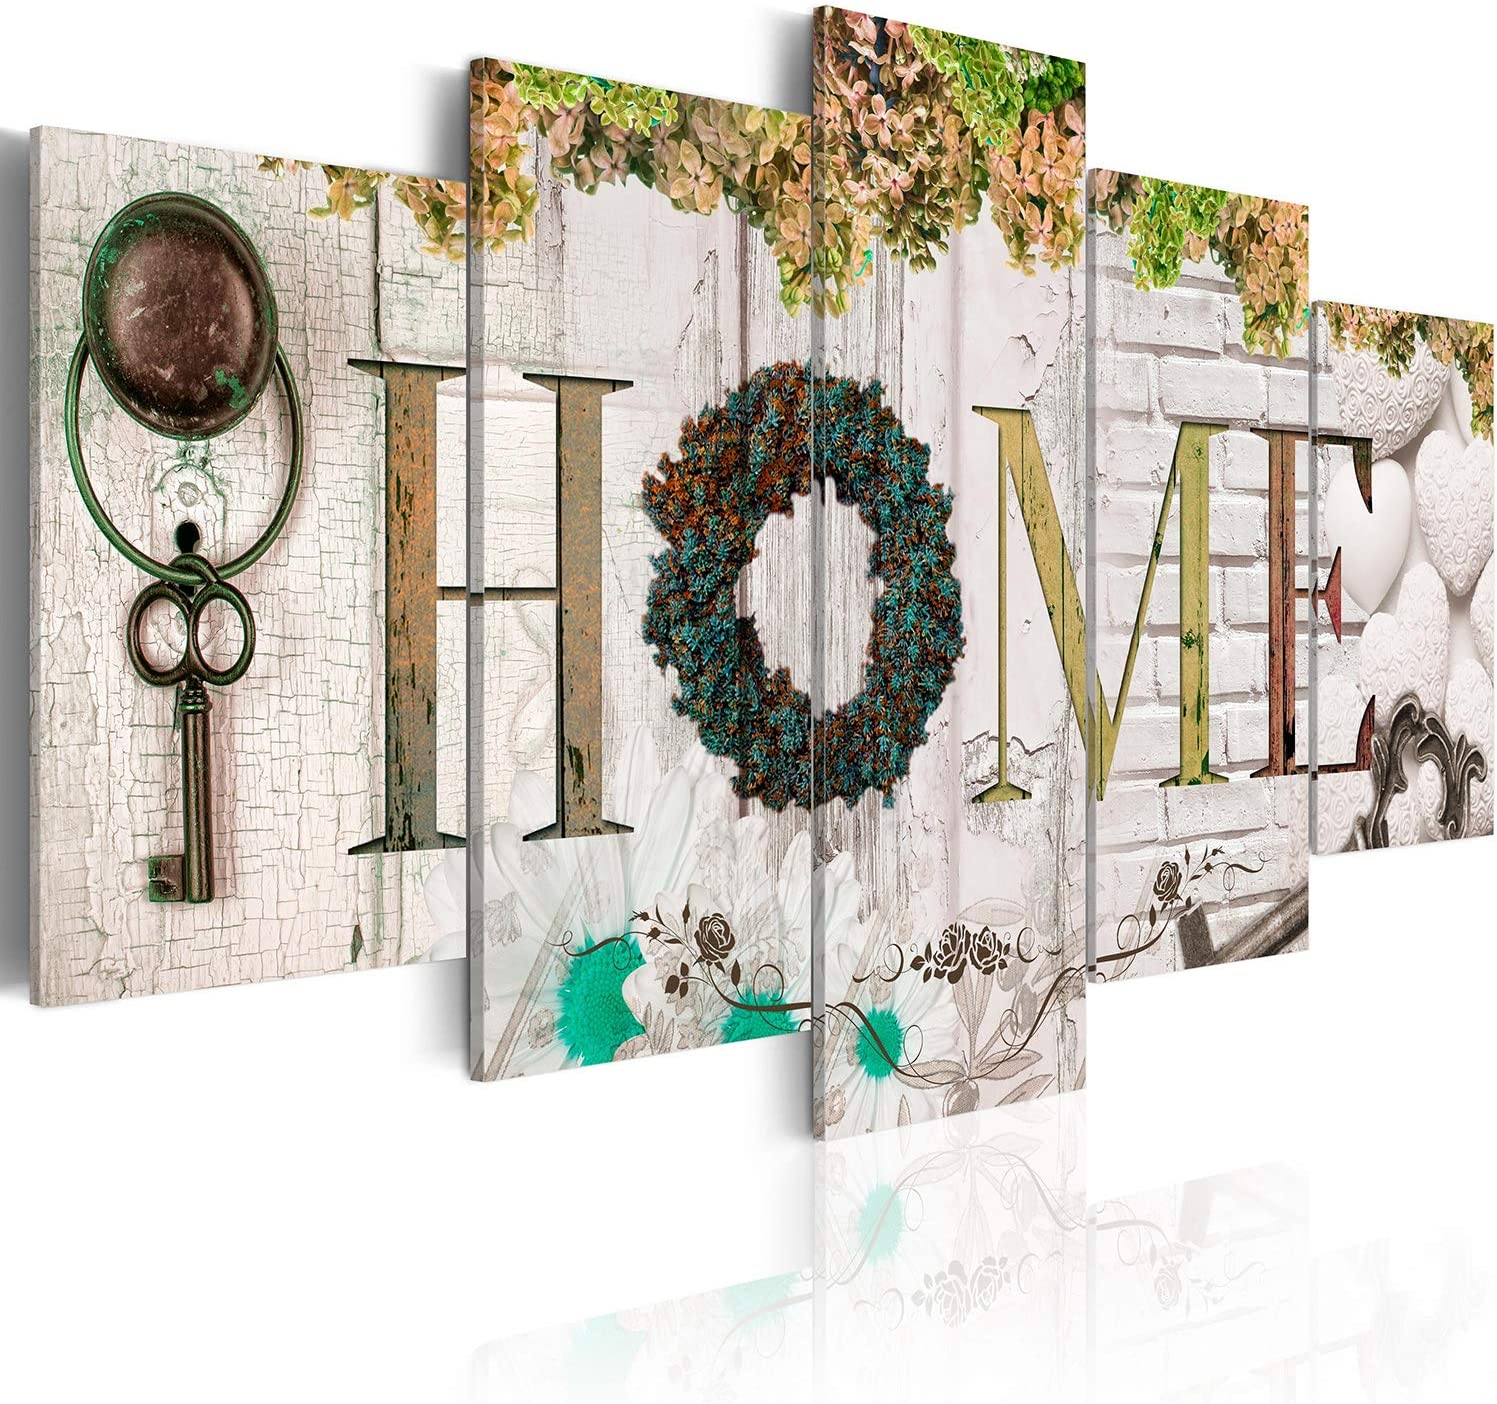 "Biufo 5 Pieces Sweet Home Sign Wall Art Canvas Print Forever Love for Family Painting Pictures Living Room Decorations Flower Artwork, Framed 40"" W x 20"" H"